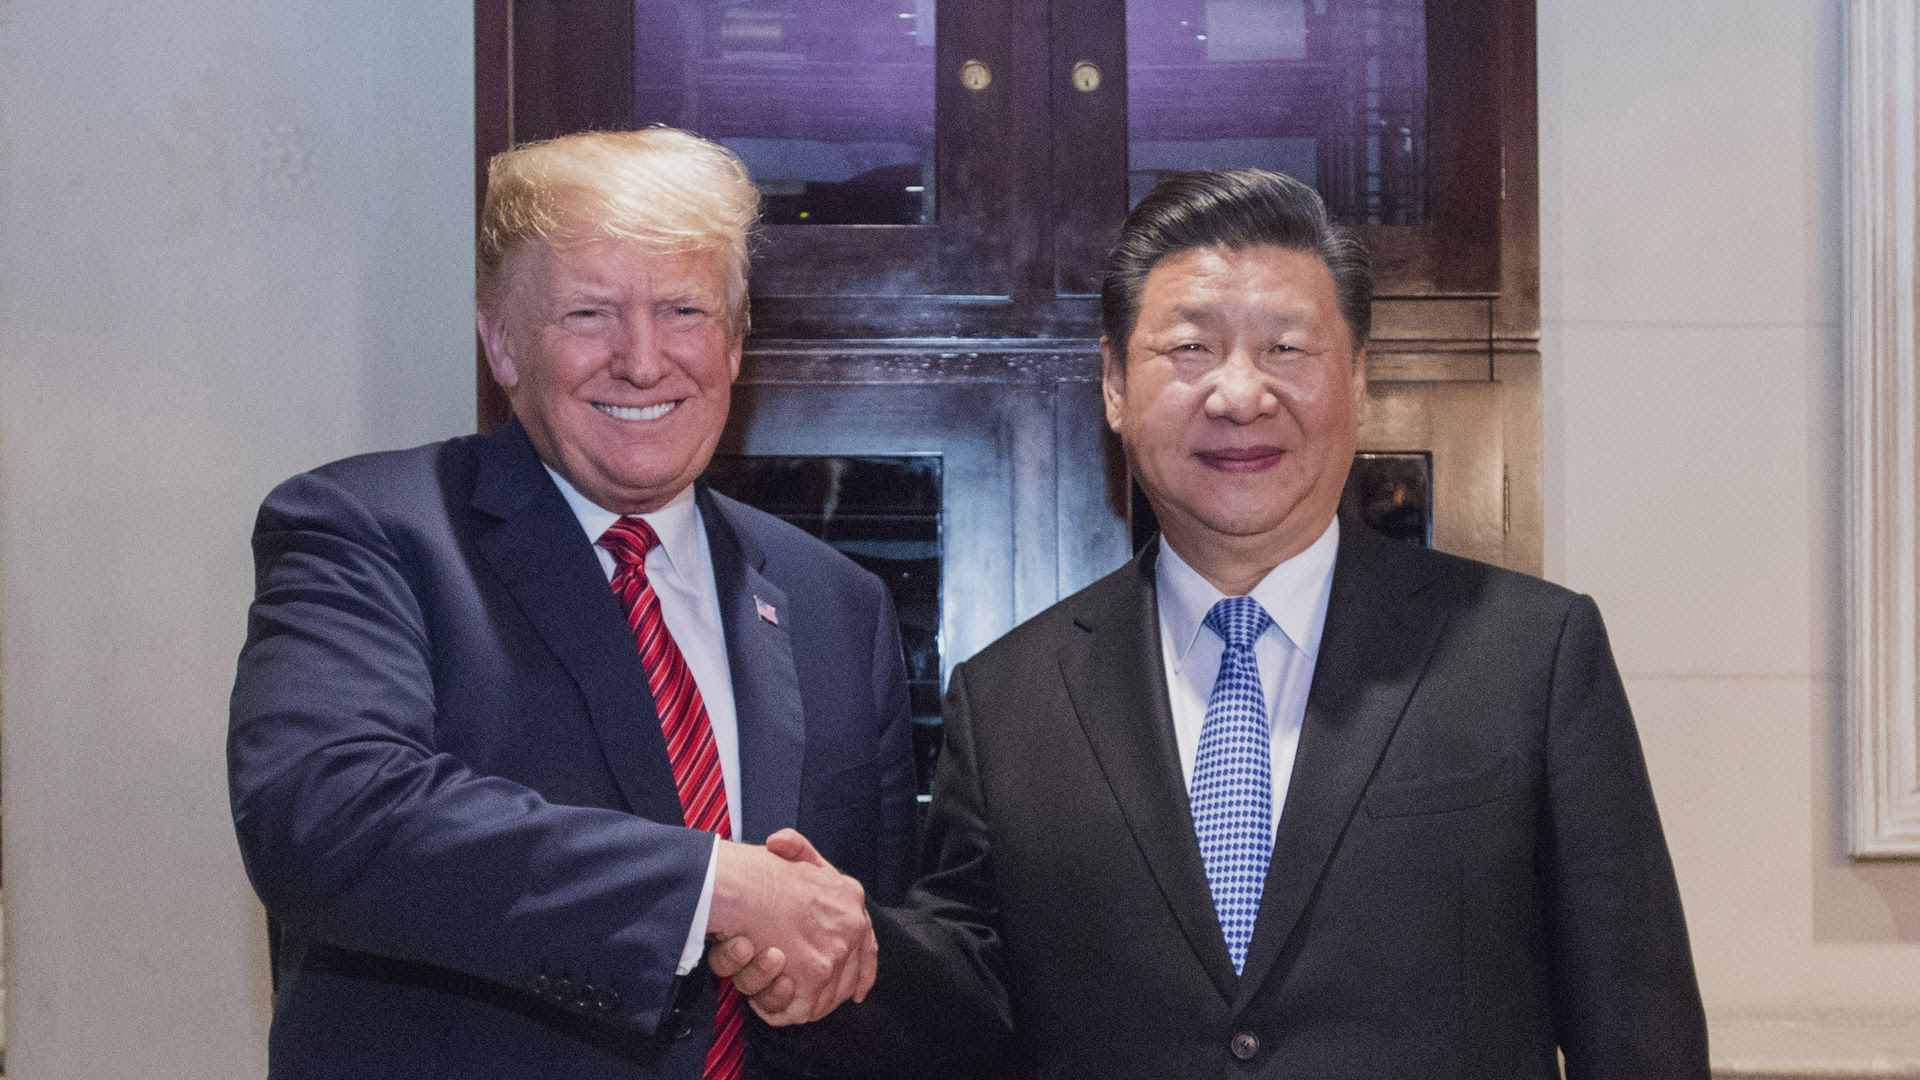 President Trump and Chinese President Xi Jinping smile while shaking hands